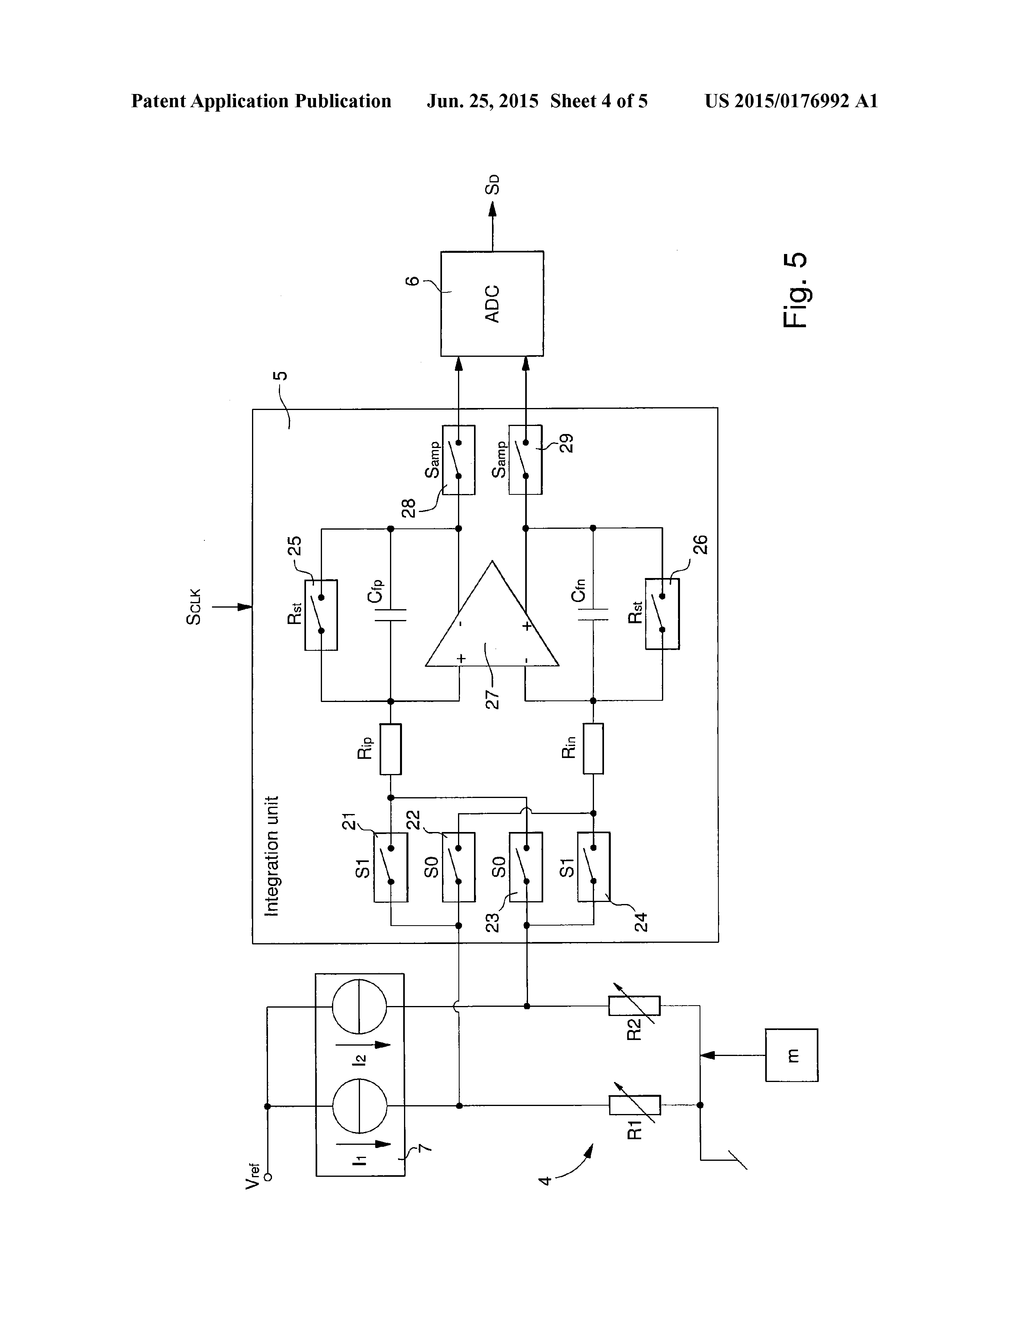 Electronic Circuit For Measuring Rotational Speed In A Mems Diagram Gyroscope And Method Actuating The Schematic Image 05